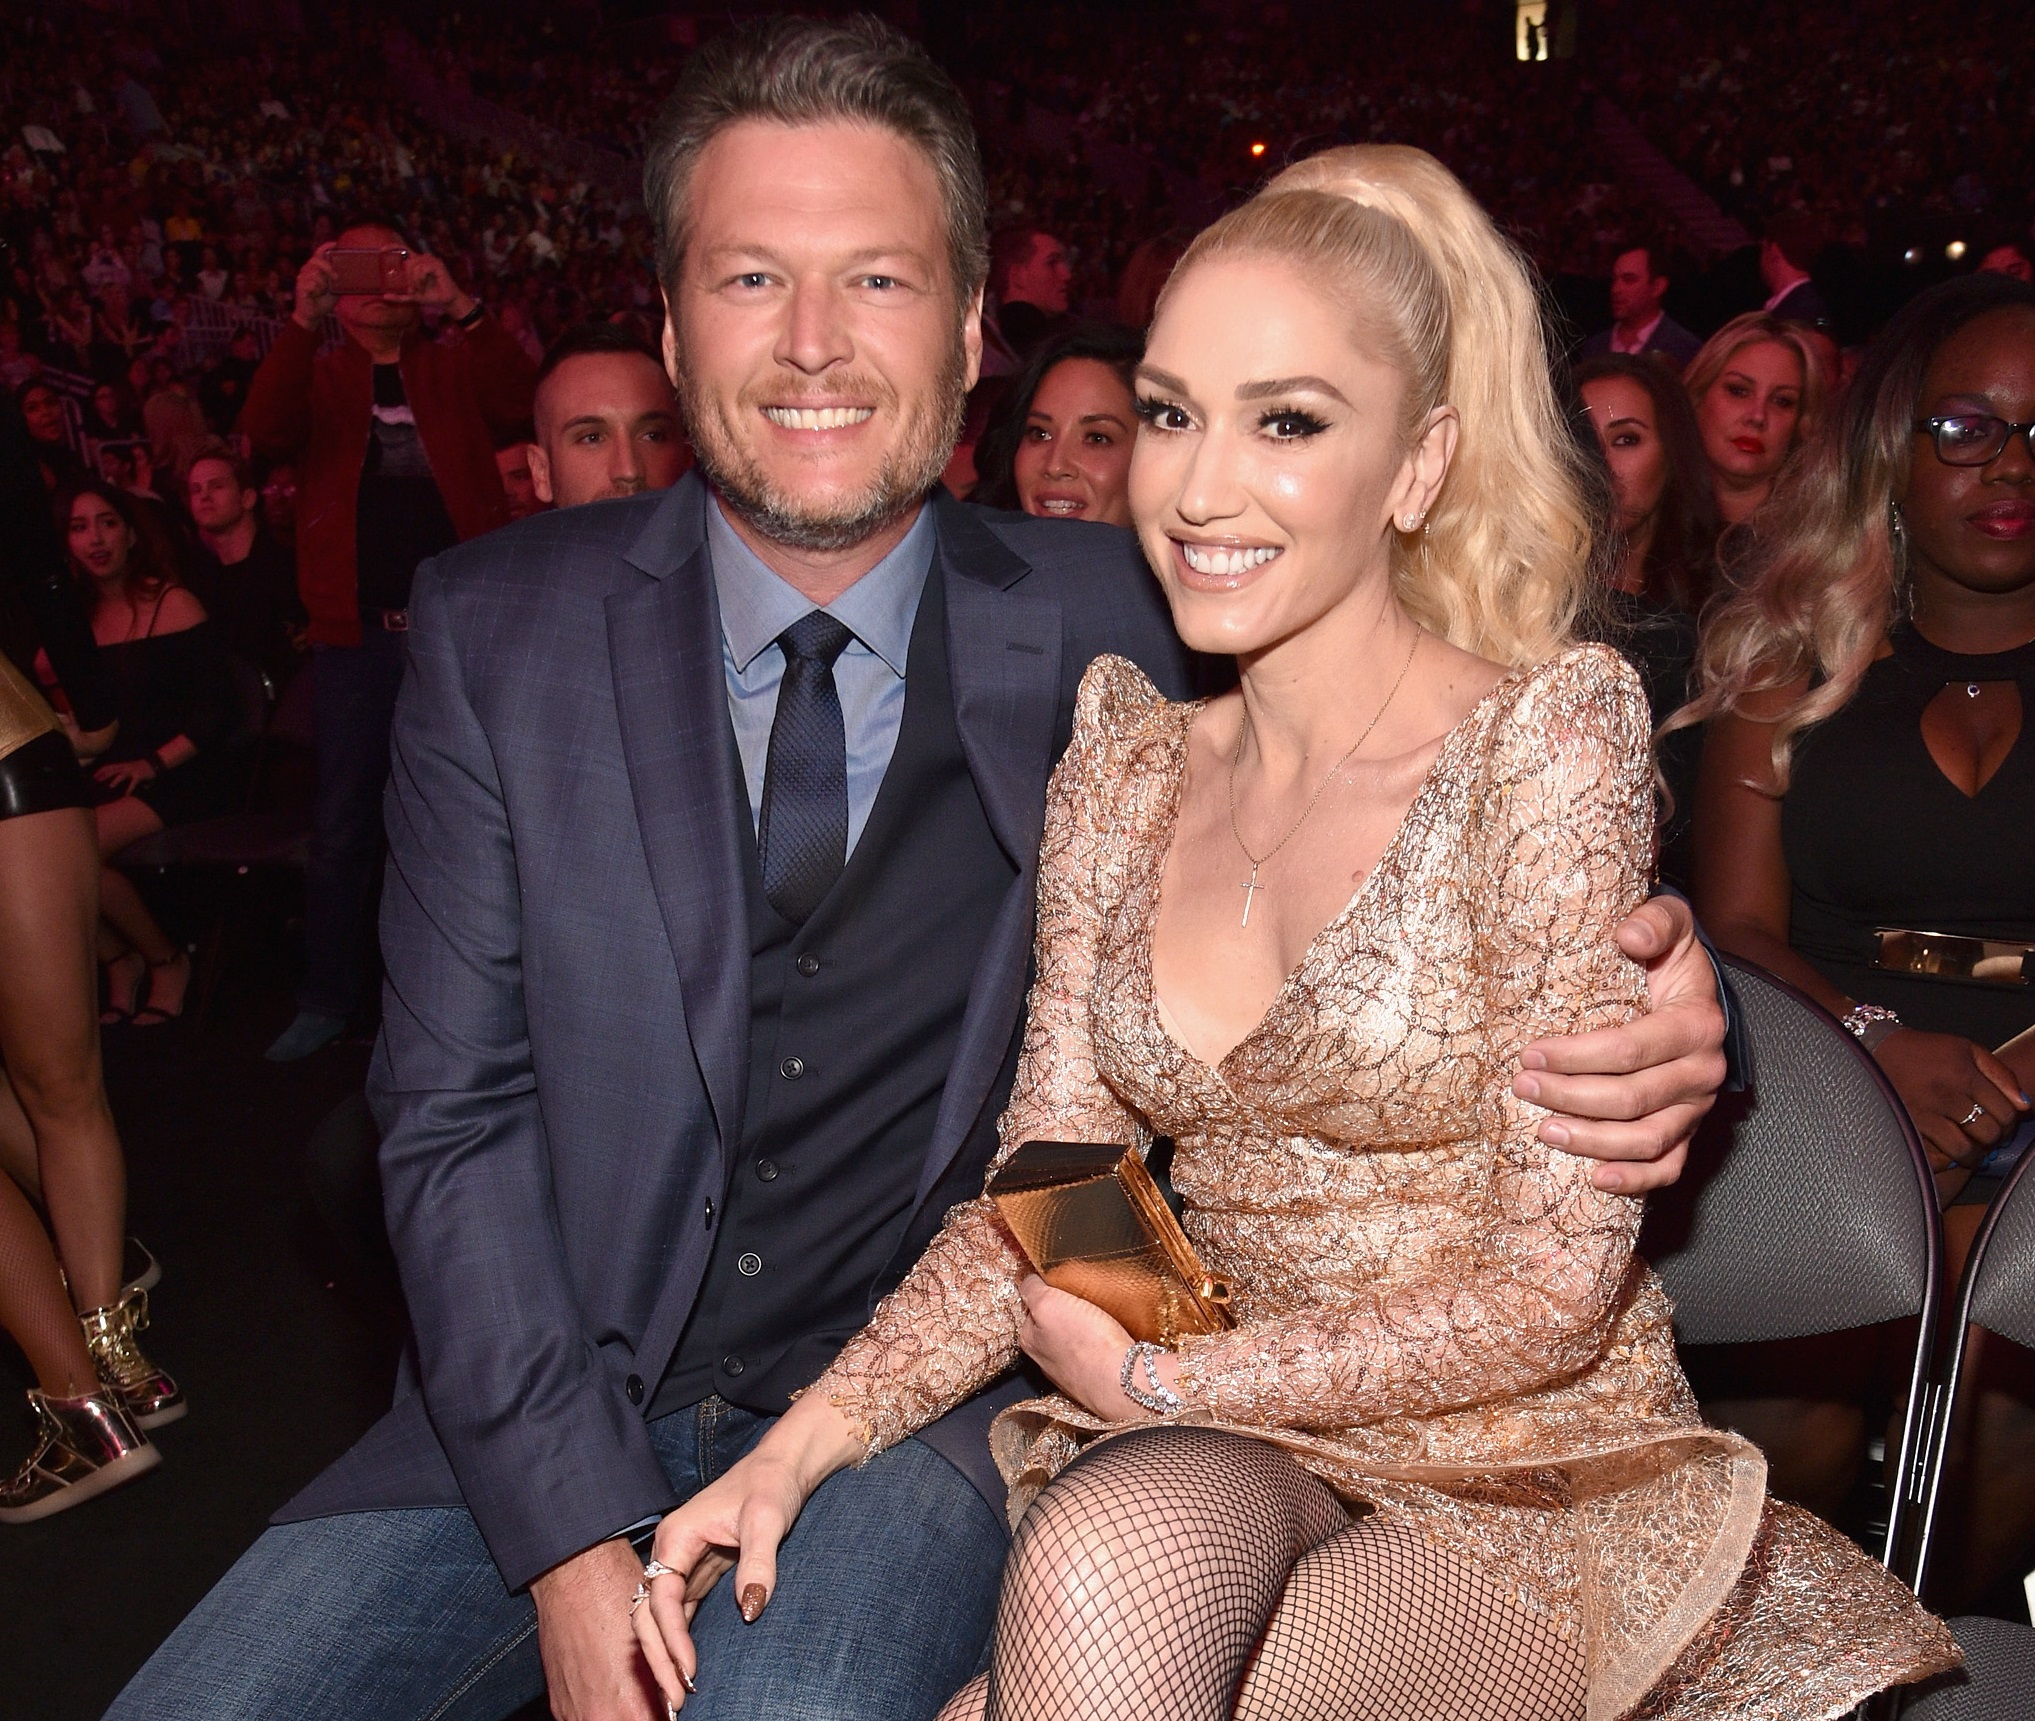 Gwen Stefani and Blake Shelton Collaborate on New Christmas Song